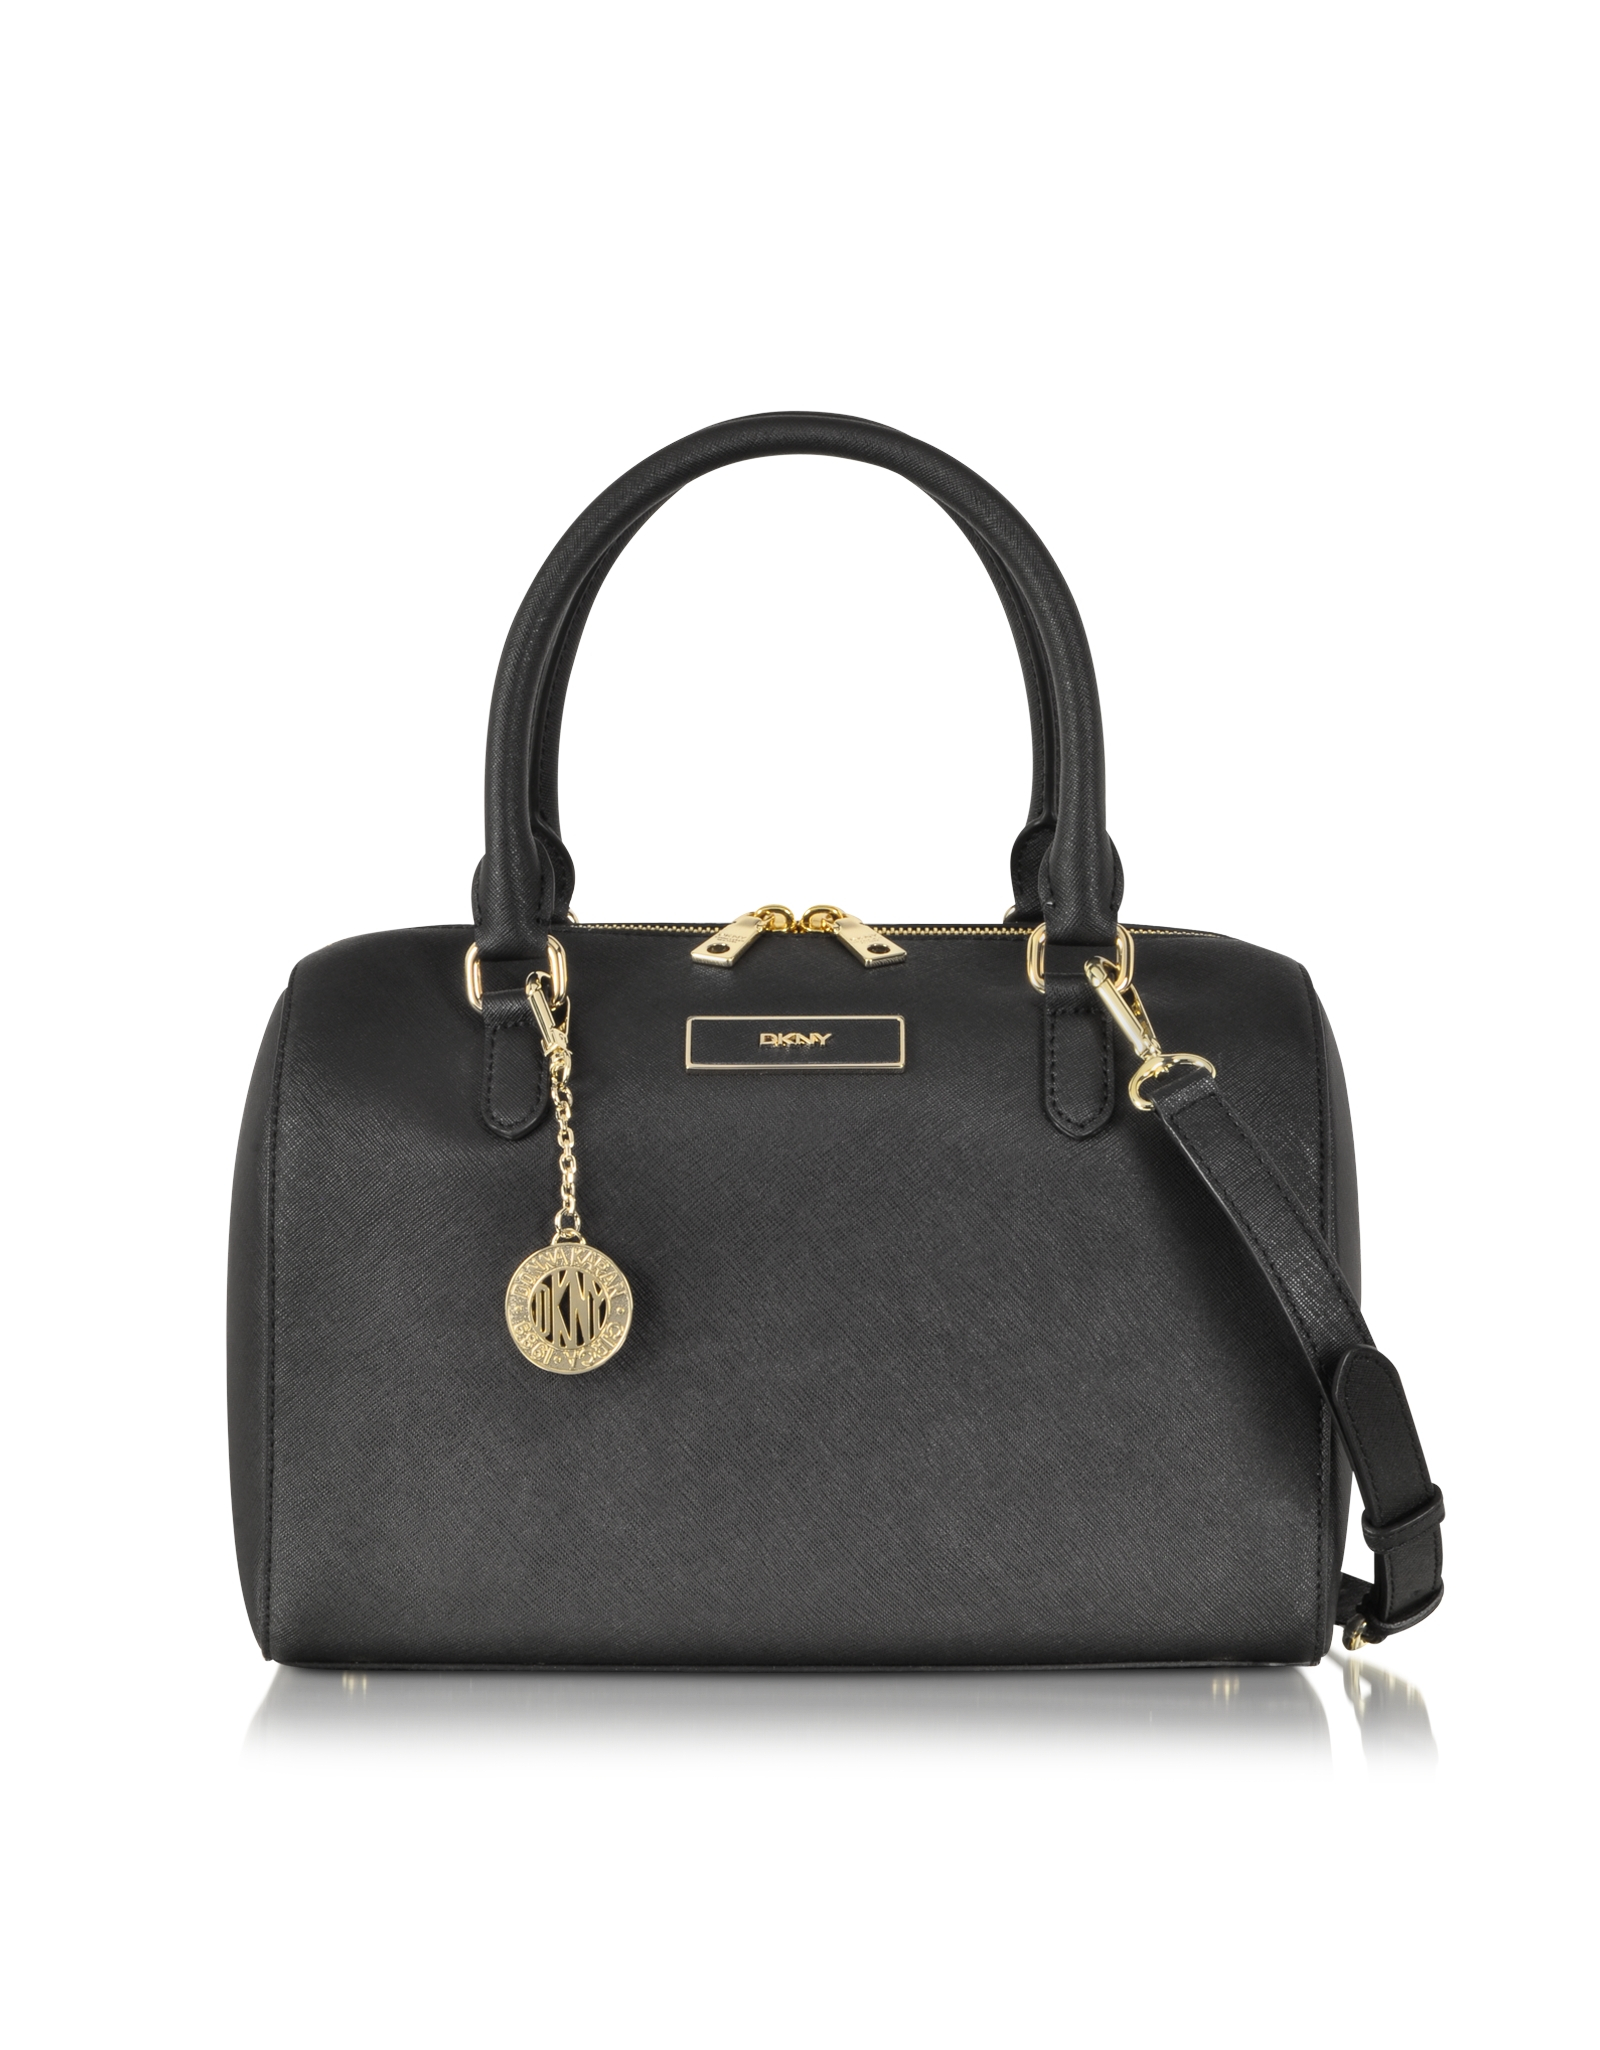 Dkny Bryant Park Saffiano Leather Satchel Bag in Black | Lyst